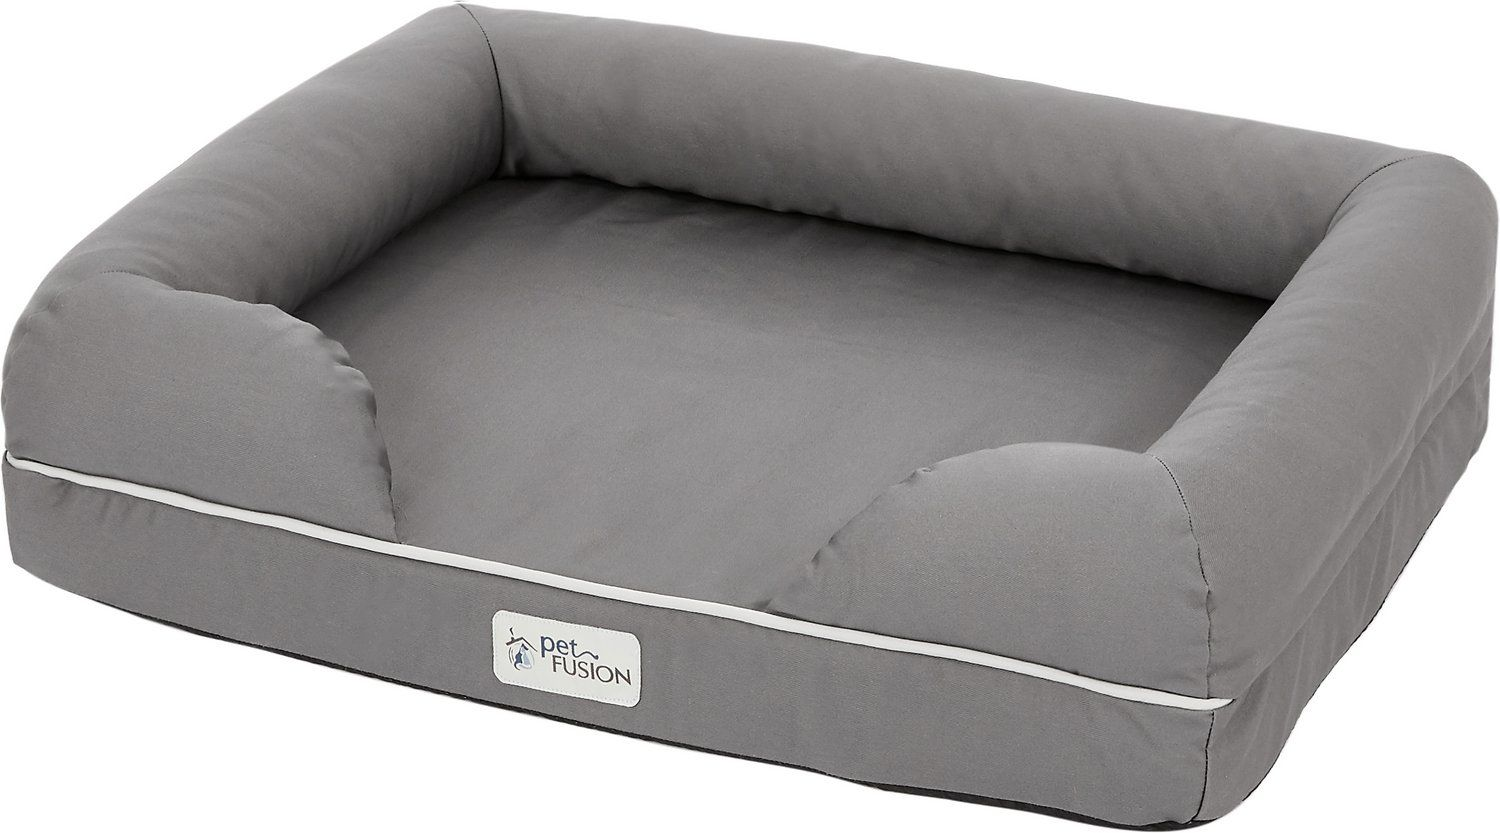 PetFusion Ultimate Lounge with Solid Memory Foam Dog & Cat